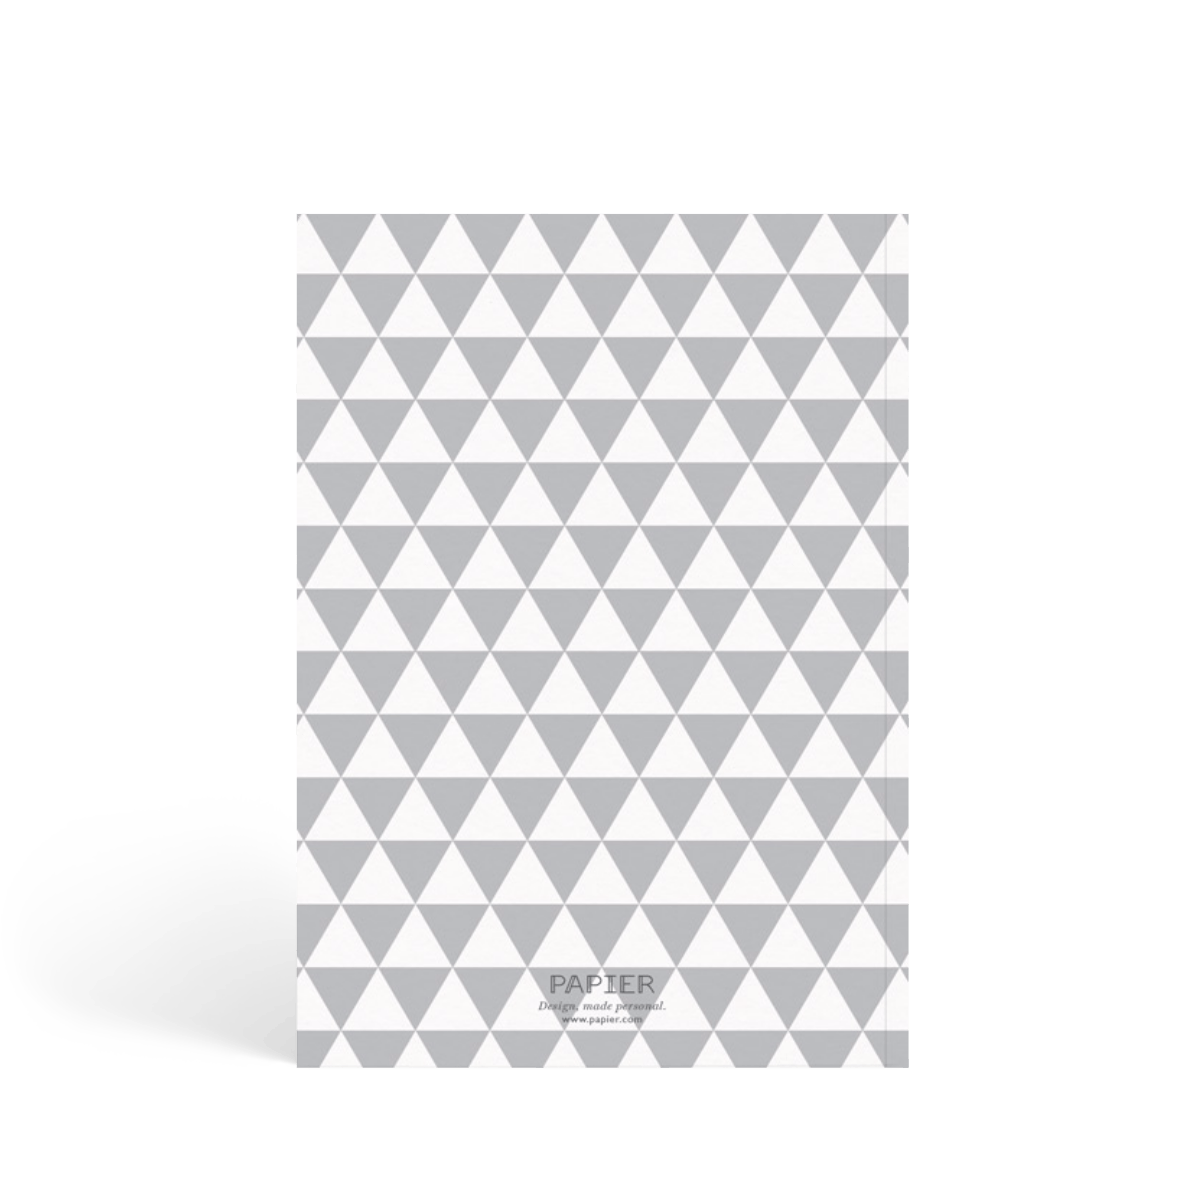 Https%3a%2f%2fwww.papier.com%2fproduct image%2f13888%2f5%2fpyramids 3563 arriere 1479894612.png?ixlib=rb 1.1